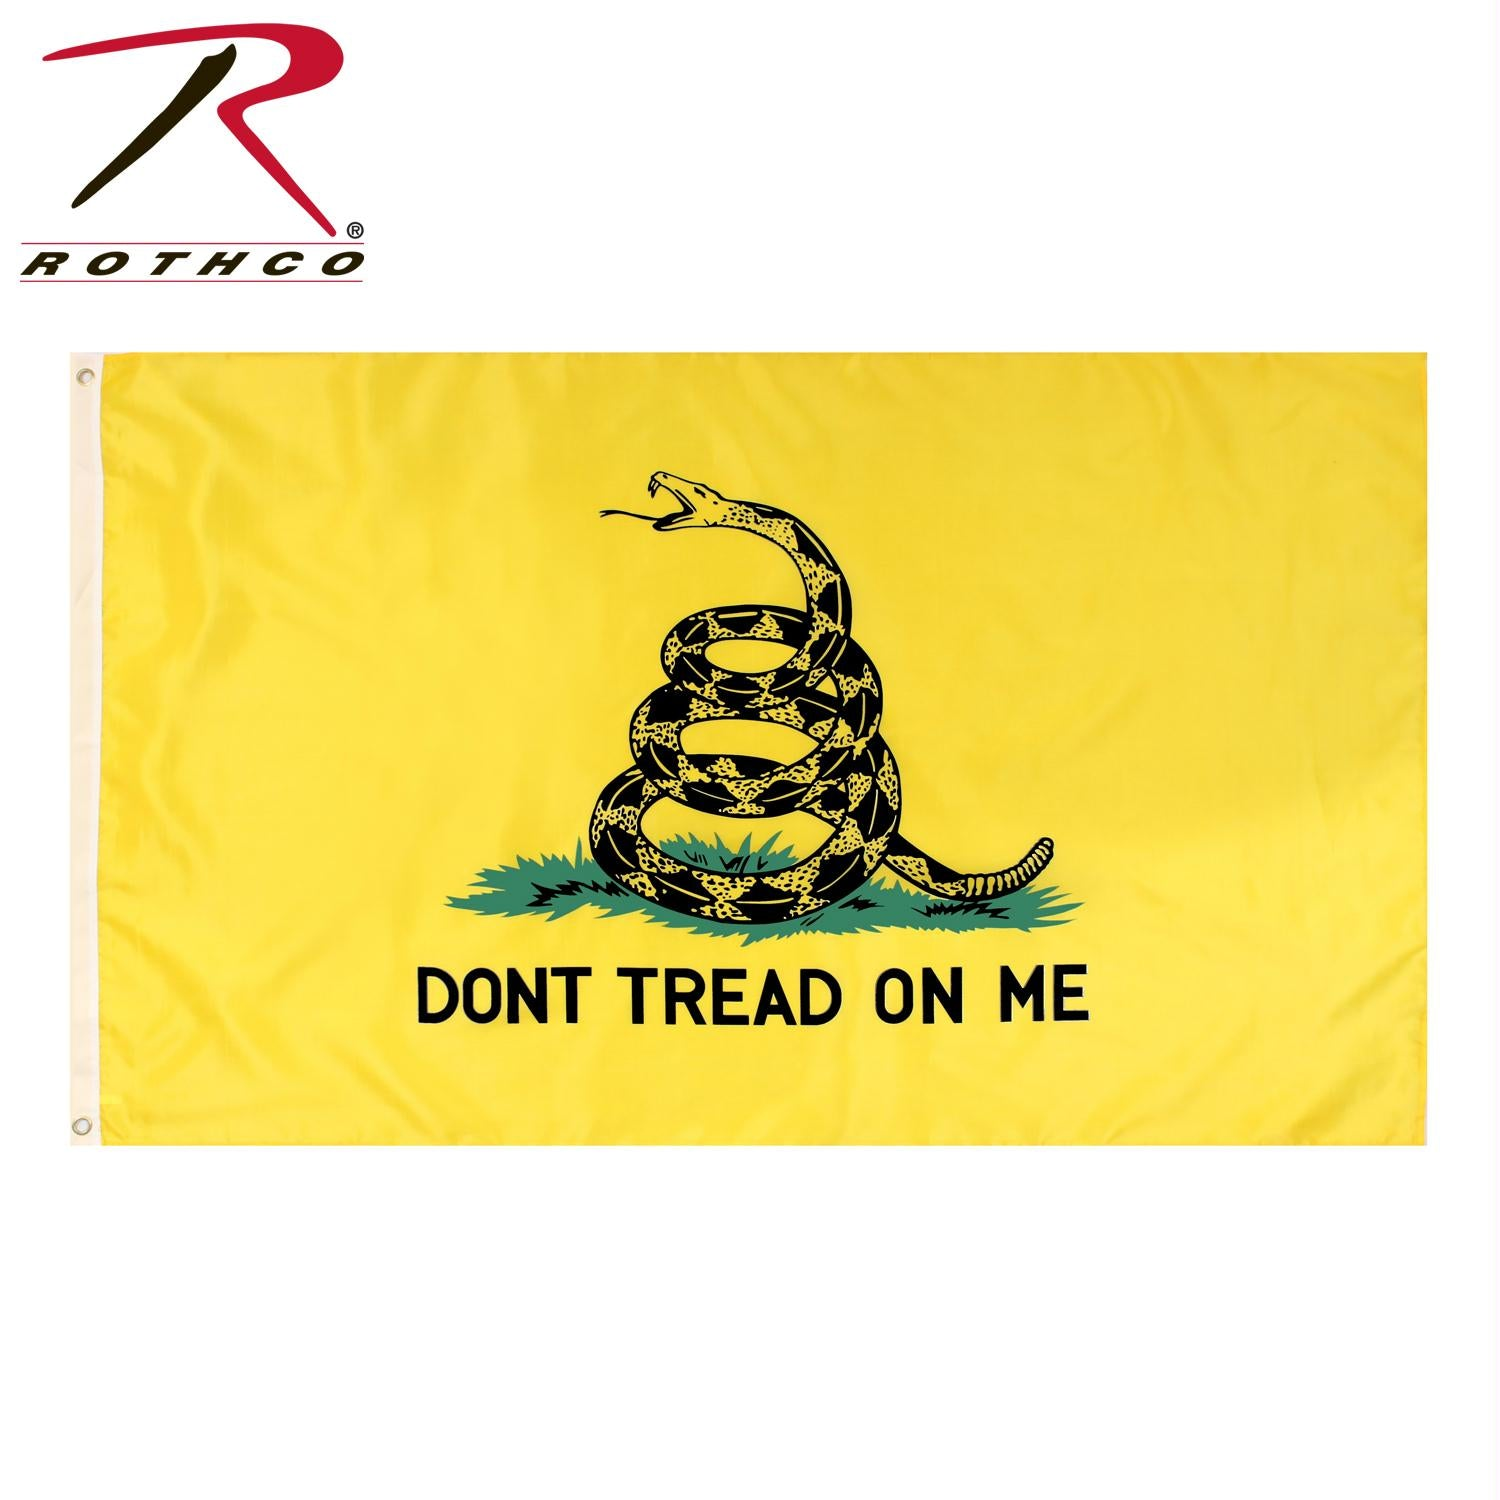 Rothco Don't Tread On Me Flag - 2' x 3'